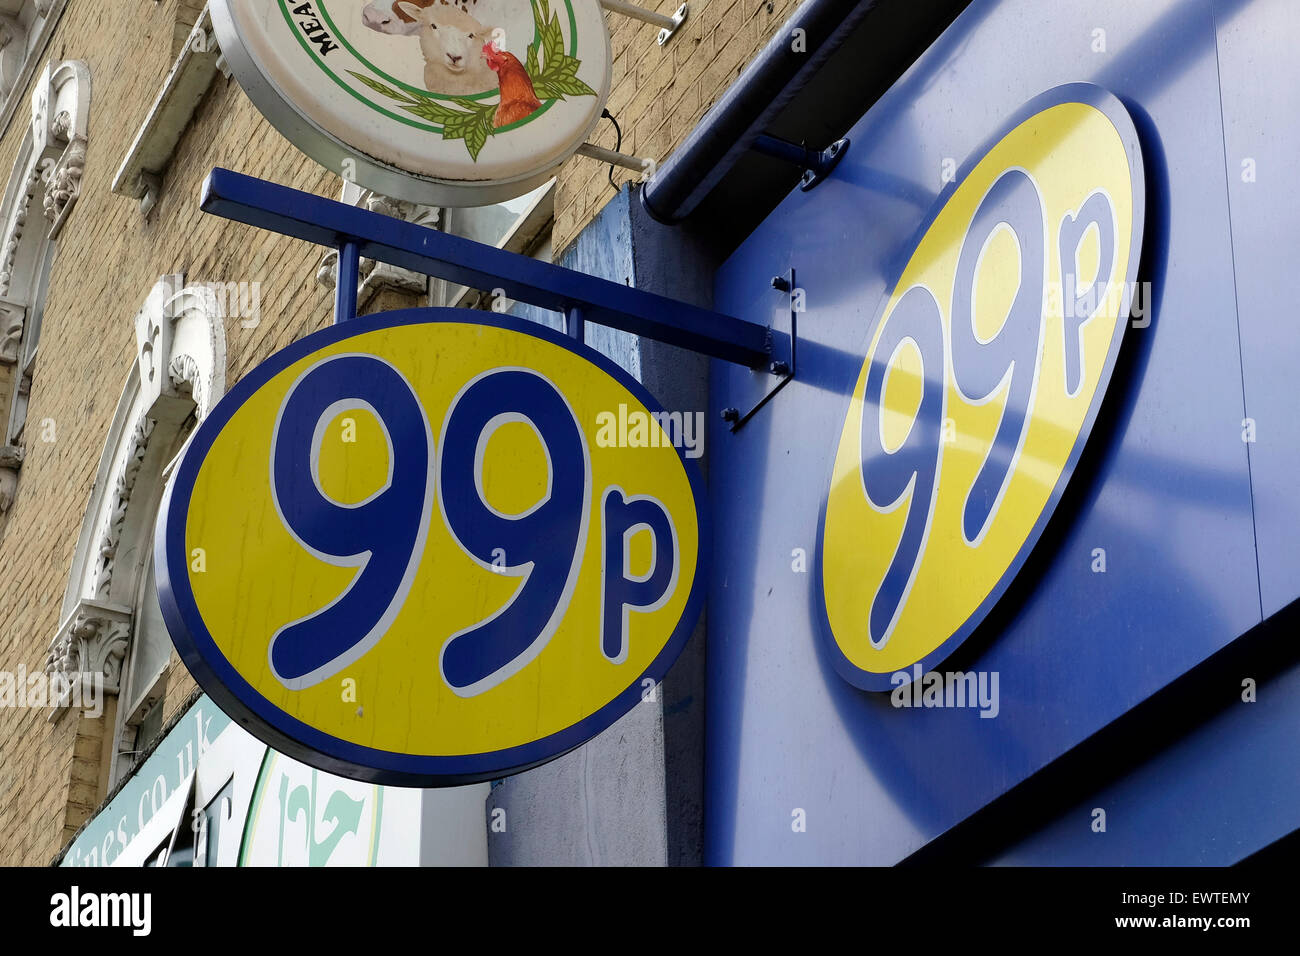 A close-up view of 99P store in Harlesden, London - Stock Image